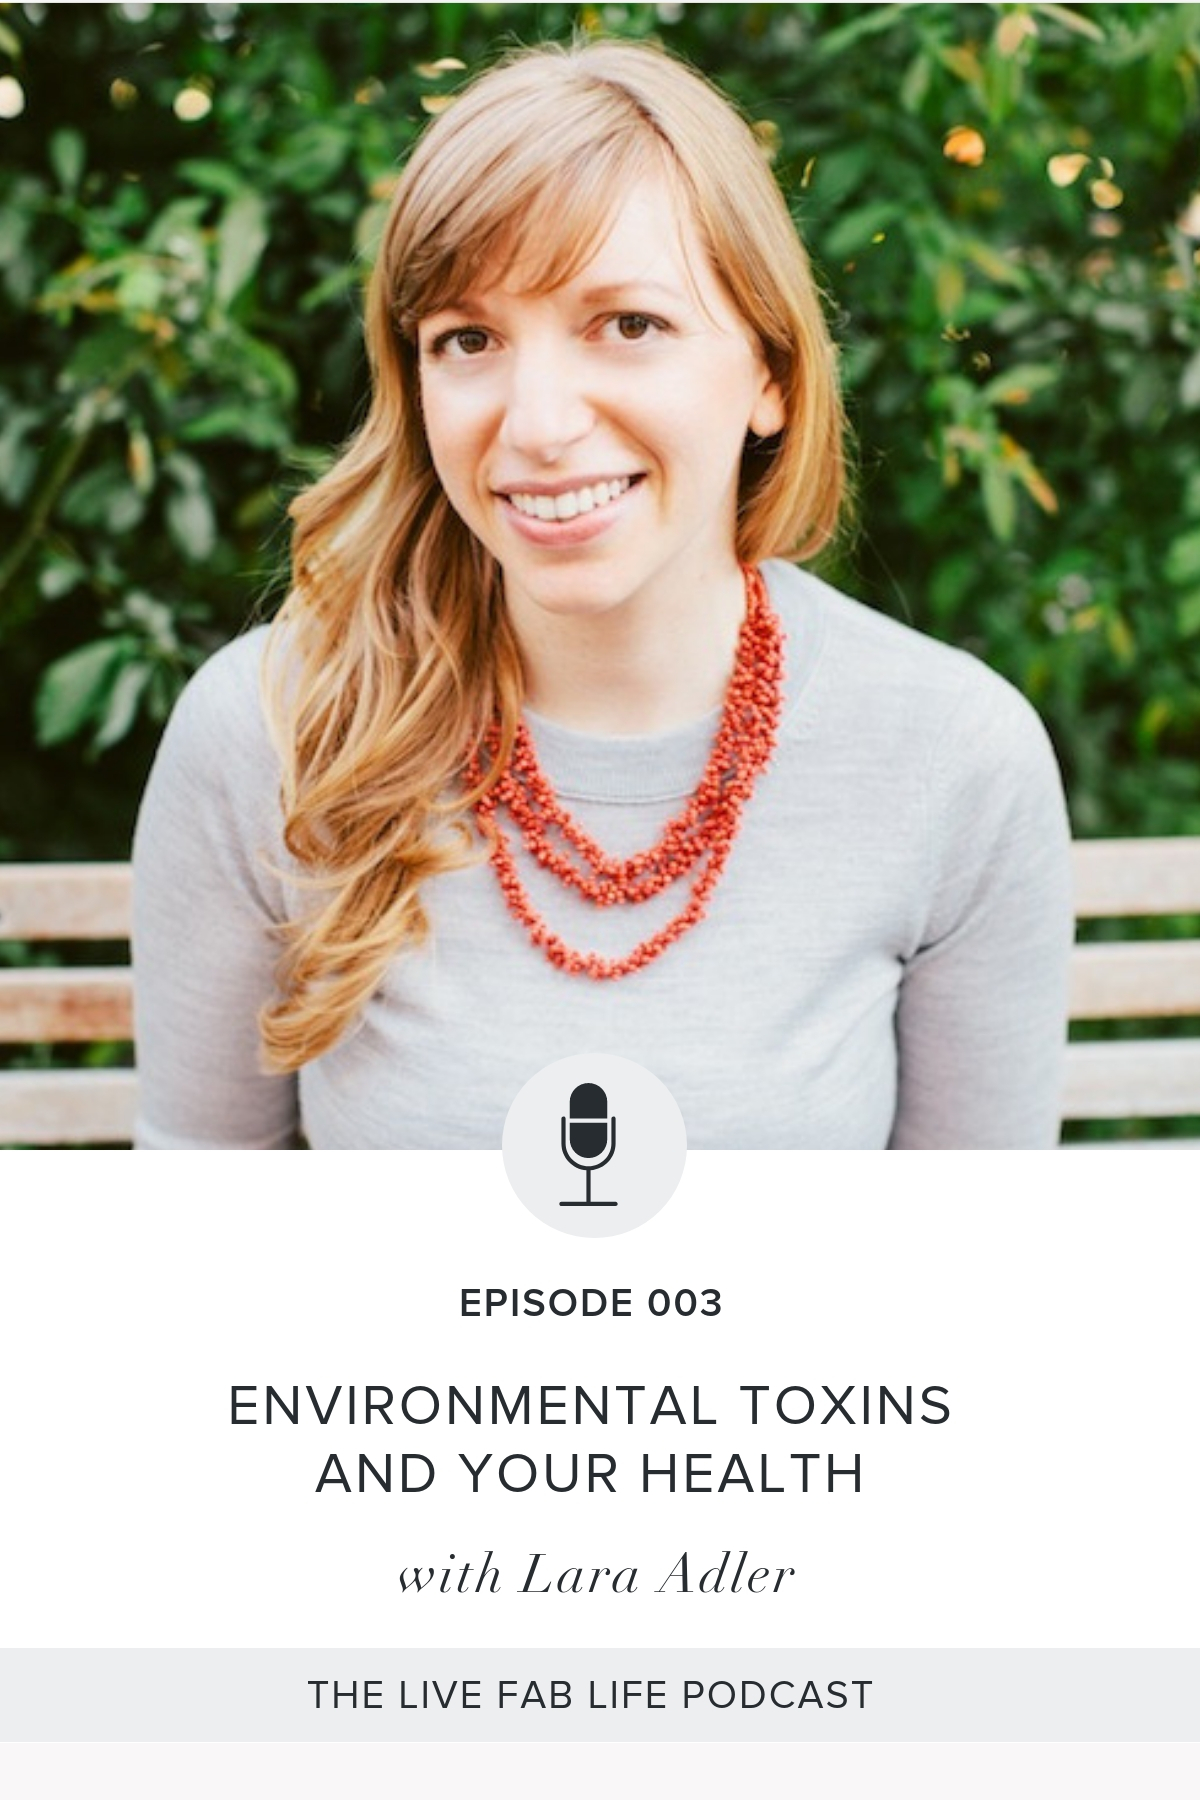 Episode 003: Environmental Toxins and Your Health with Lara Adler